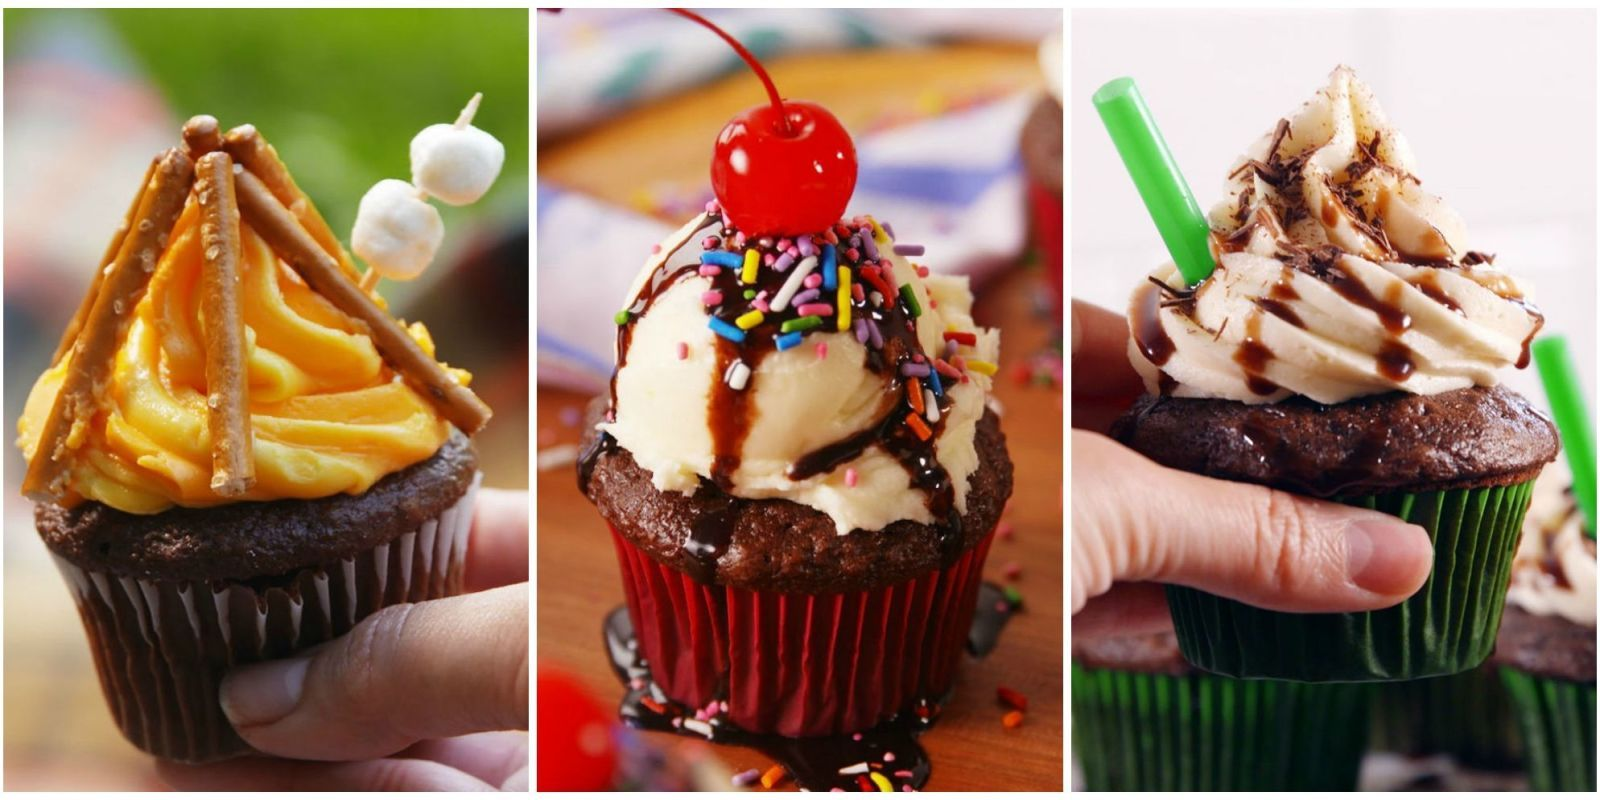 10 Easy Cupcake Recipes for Kids Cute Cupcake Decorating Ideas for